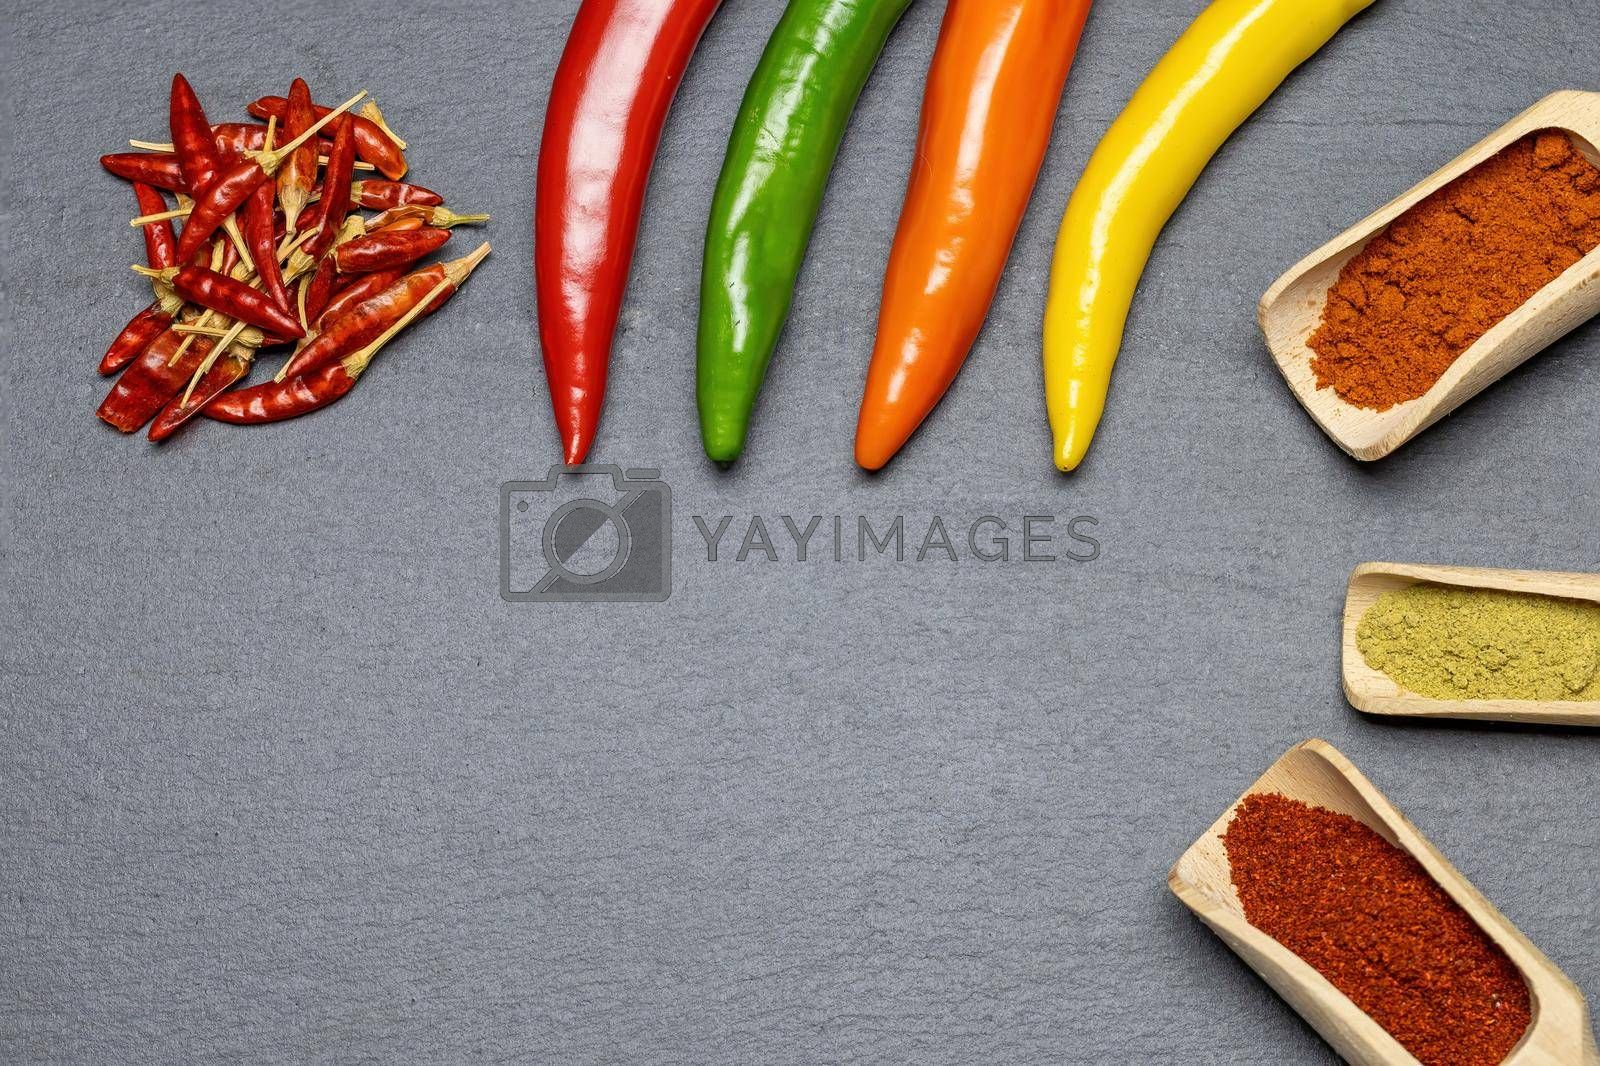 Royalty free image of Different types of fresh, dried and ground chili on the desk. by Frank11